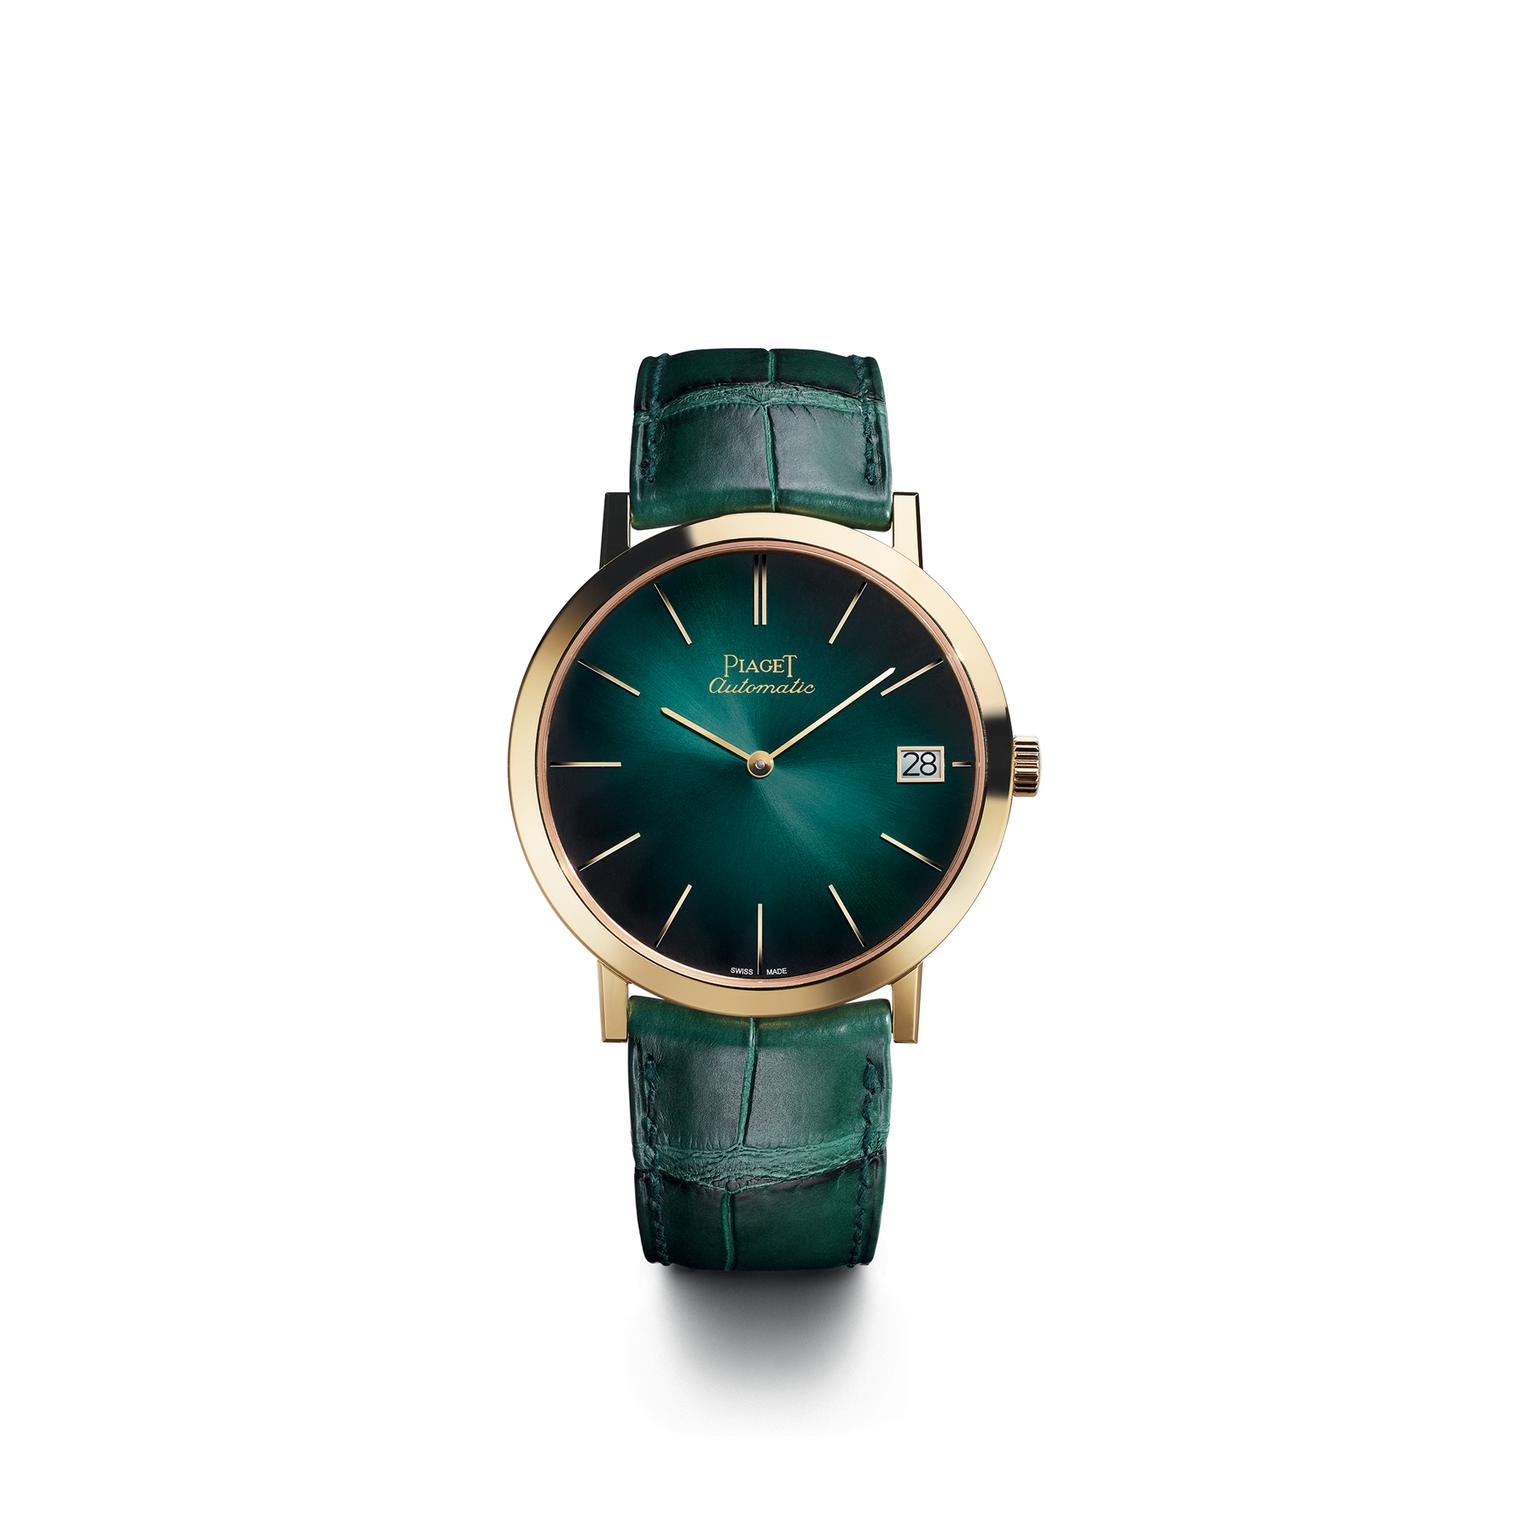 Piaget Altiplano 40mm pine green dial